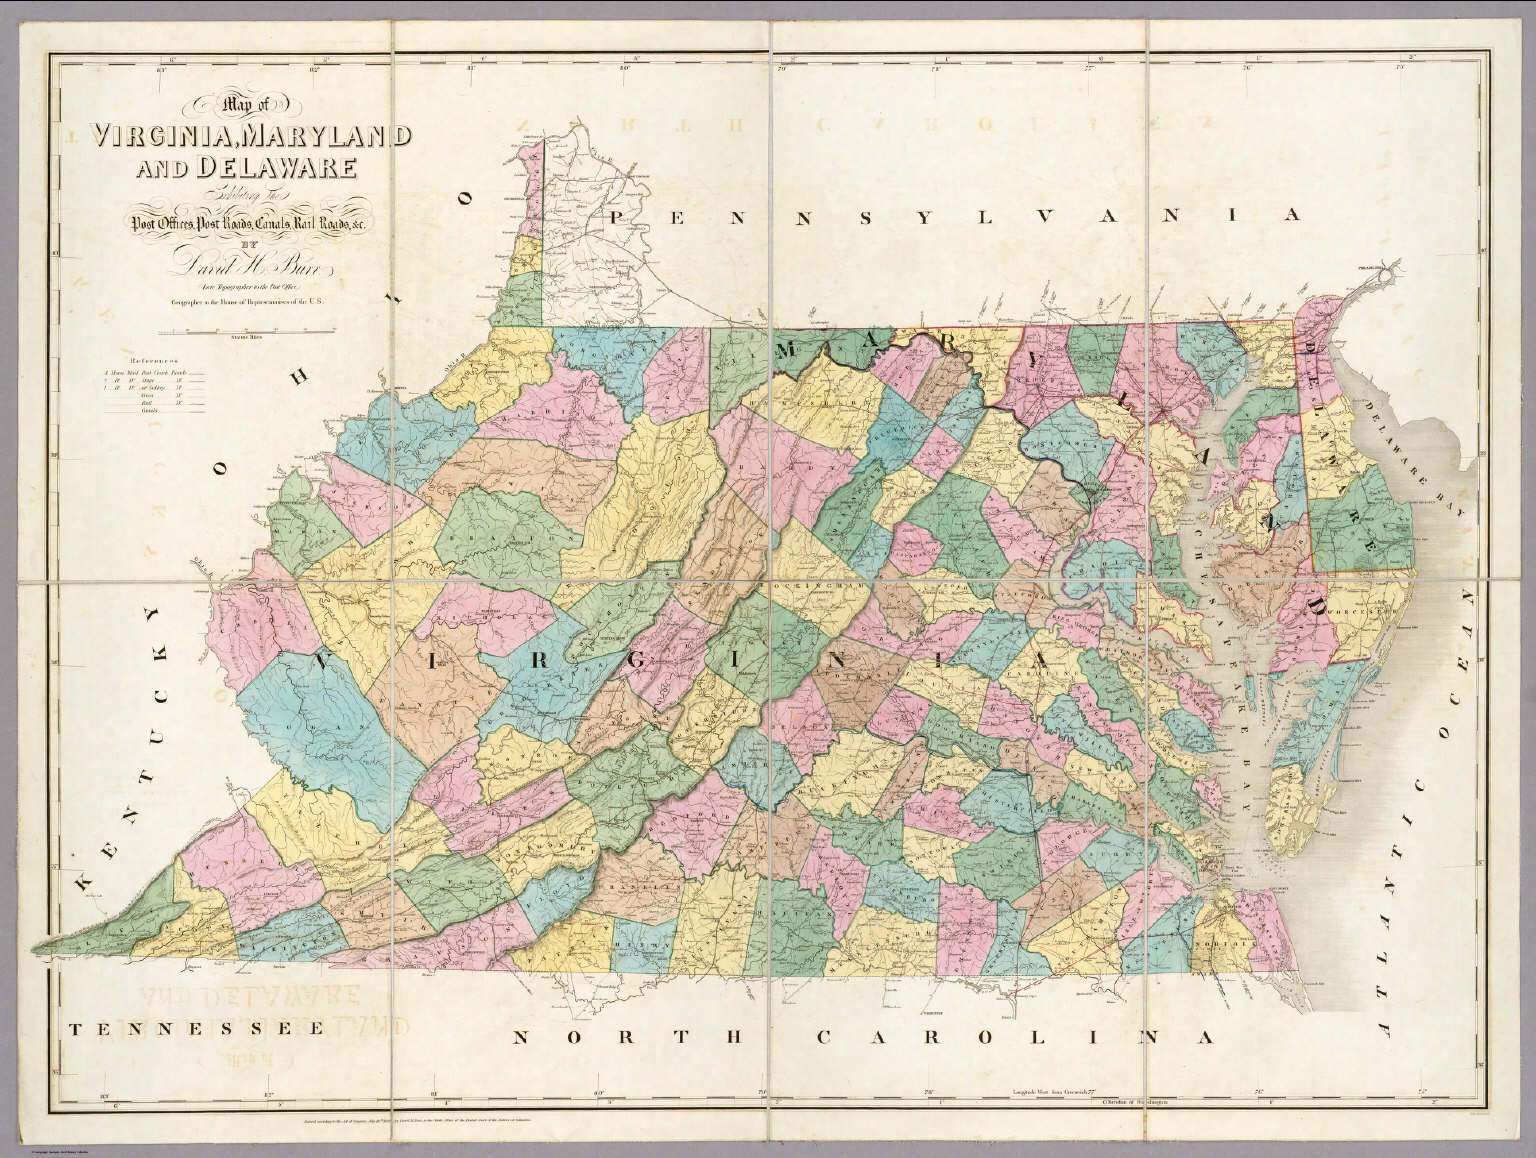 Map of Virginia, Maryland and Delaware. / Burr, David H., 1803